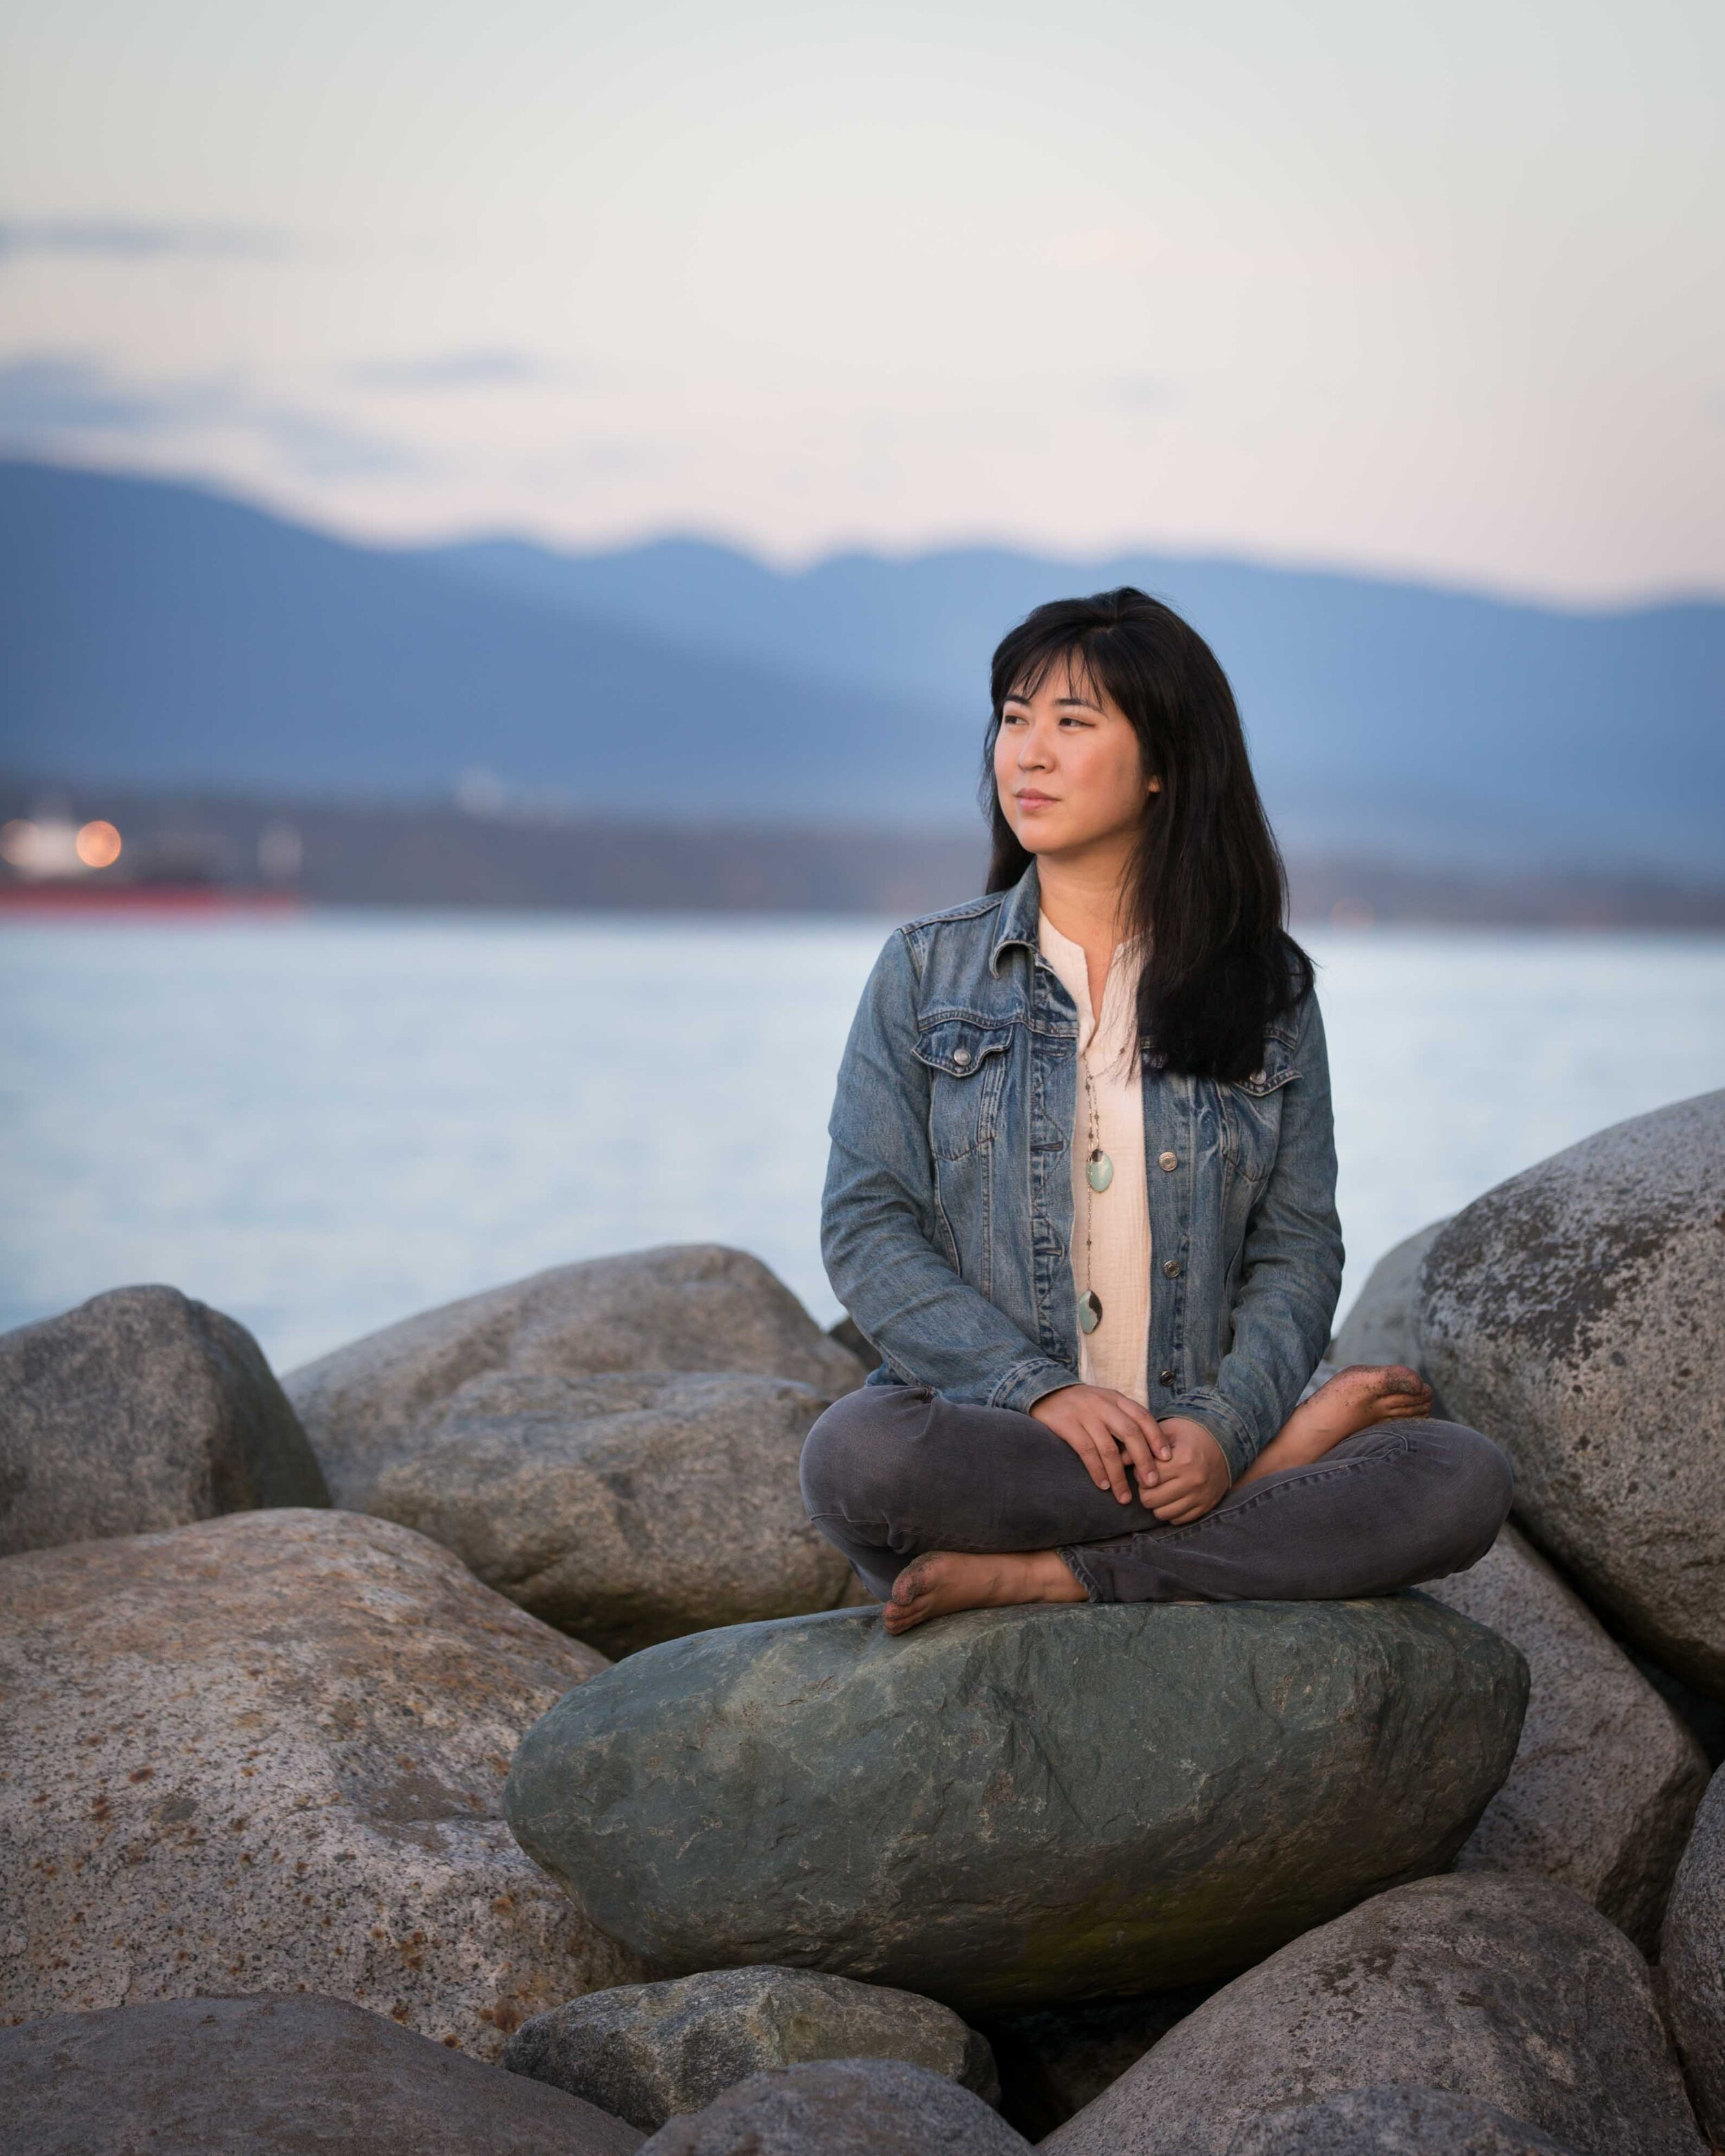 About Kat Lee - Kat is a practitioner who is passionate about the transformative integrative practices that can be unveiled within the eastern acupuncture lineage and teachings. She shares and honours these traditions through her workshops, retreats, writings and acupuncture practice.